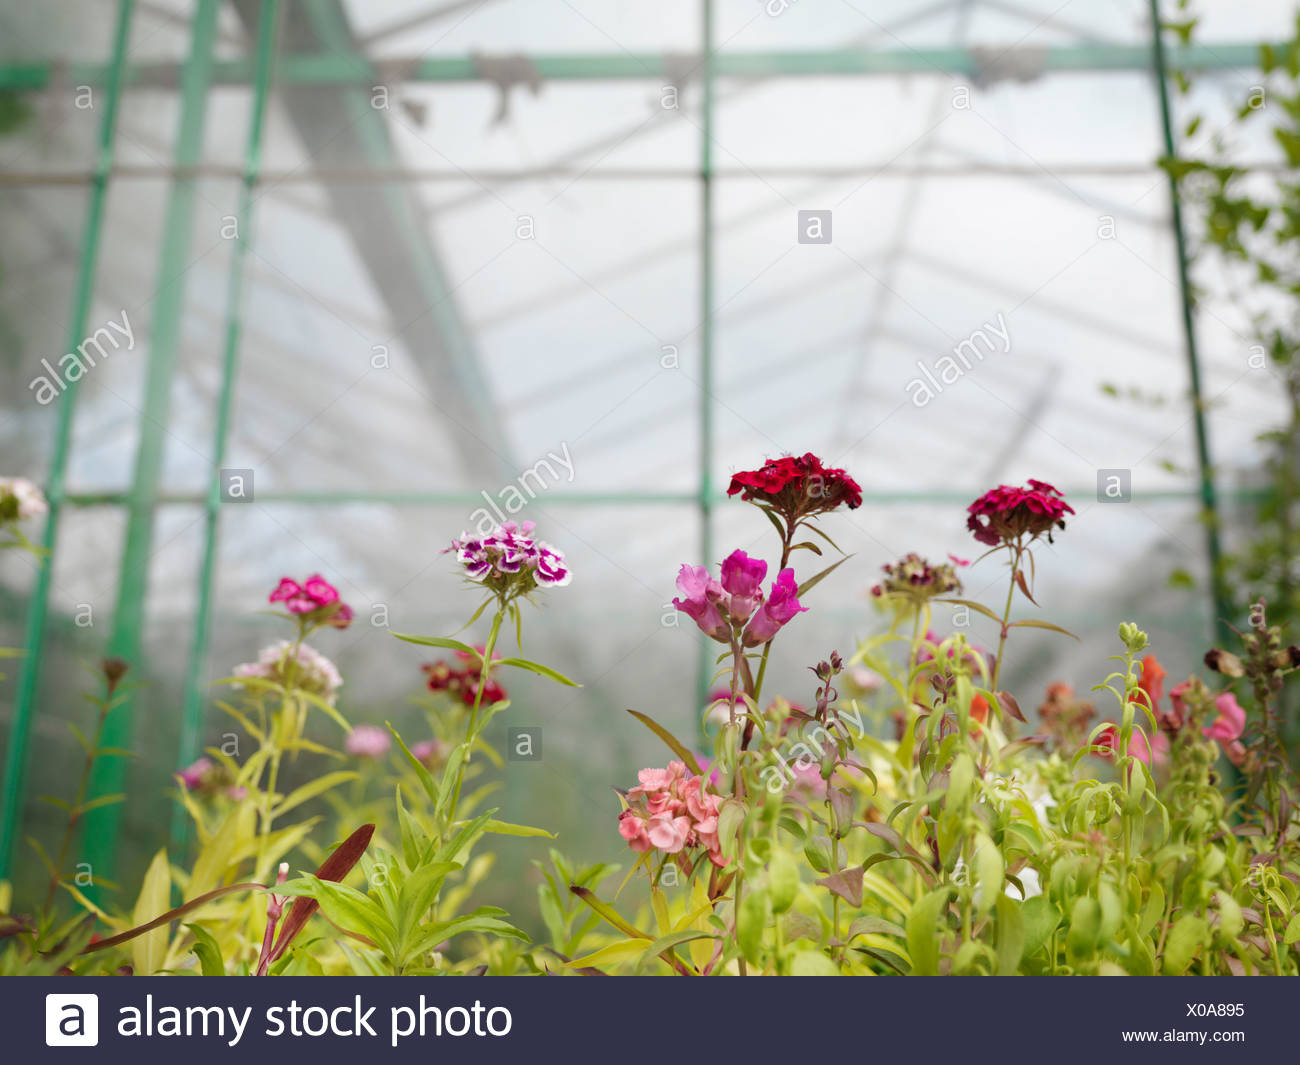 Pink Flowers In Green House - Stock Image